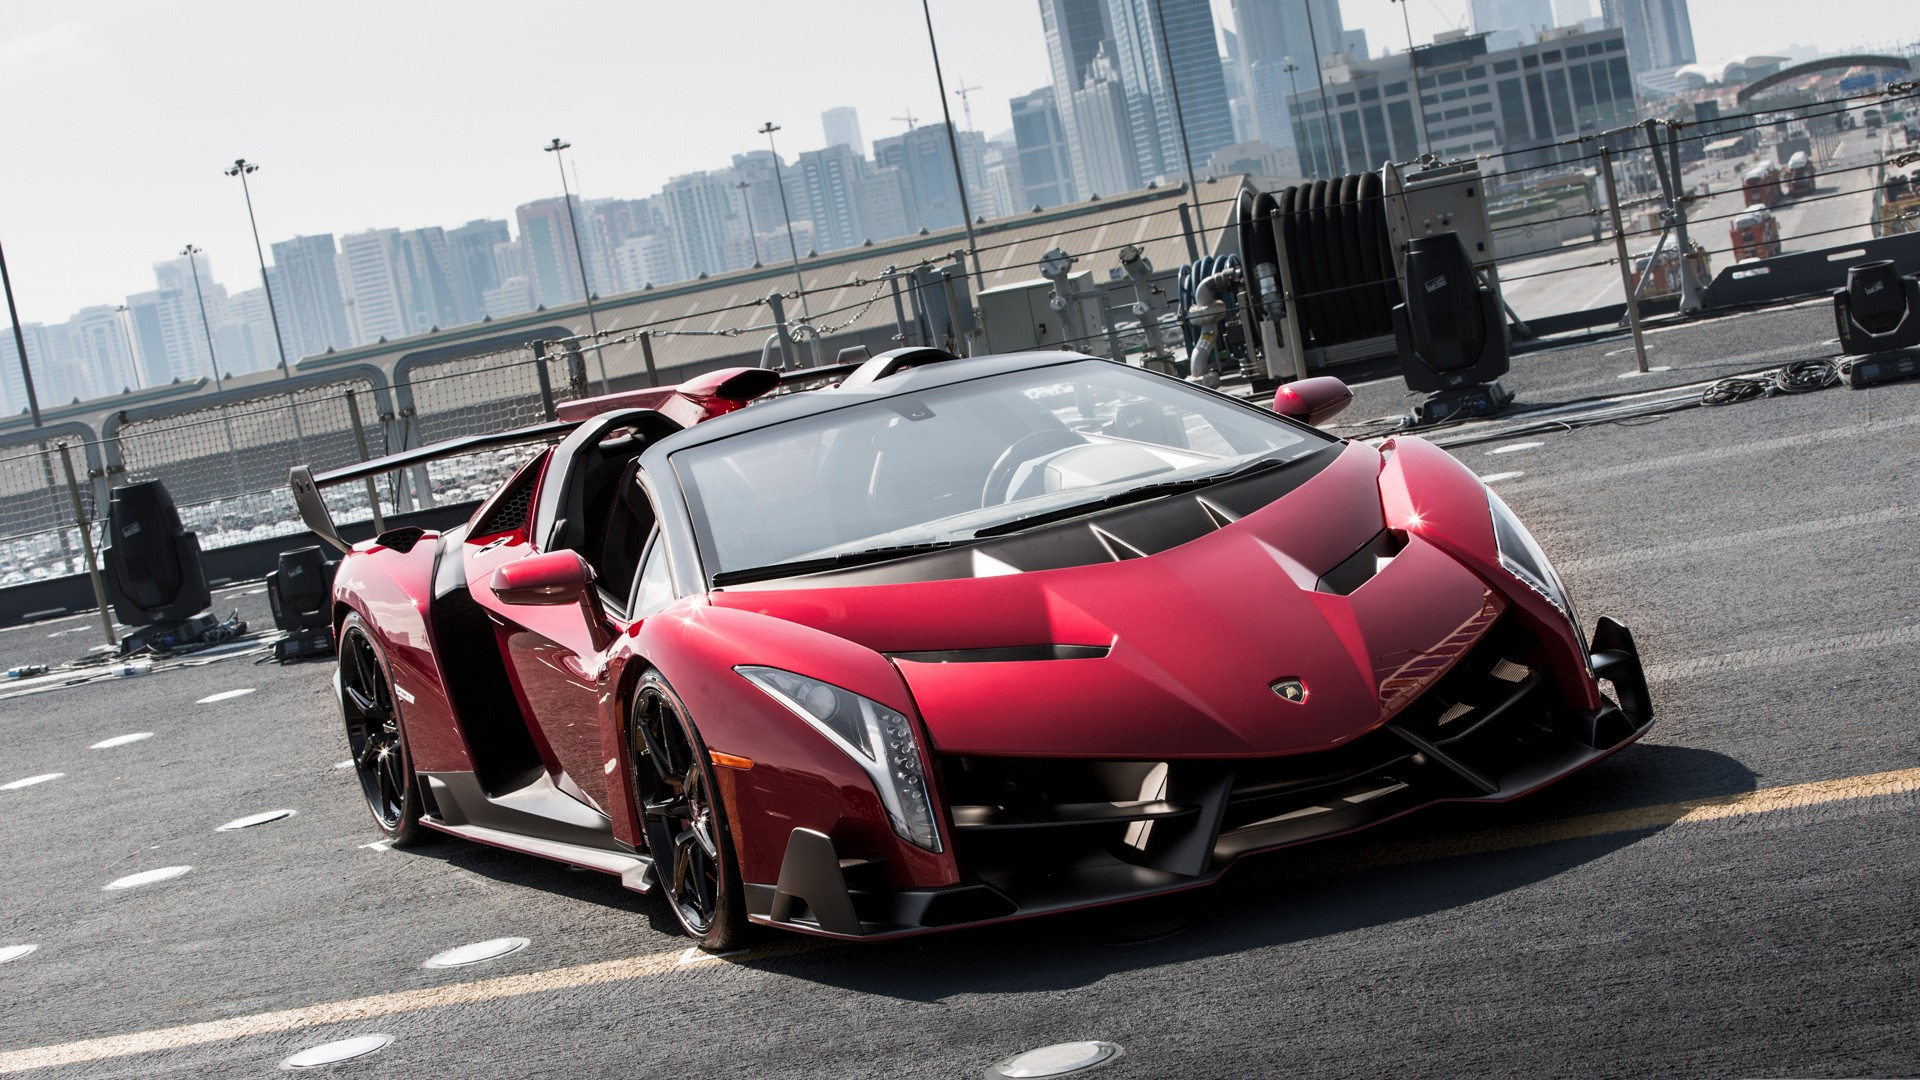 Lamborghini Veneno Roadster Wallpaper Hd Car Wallpapers